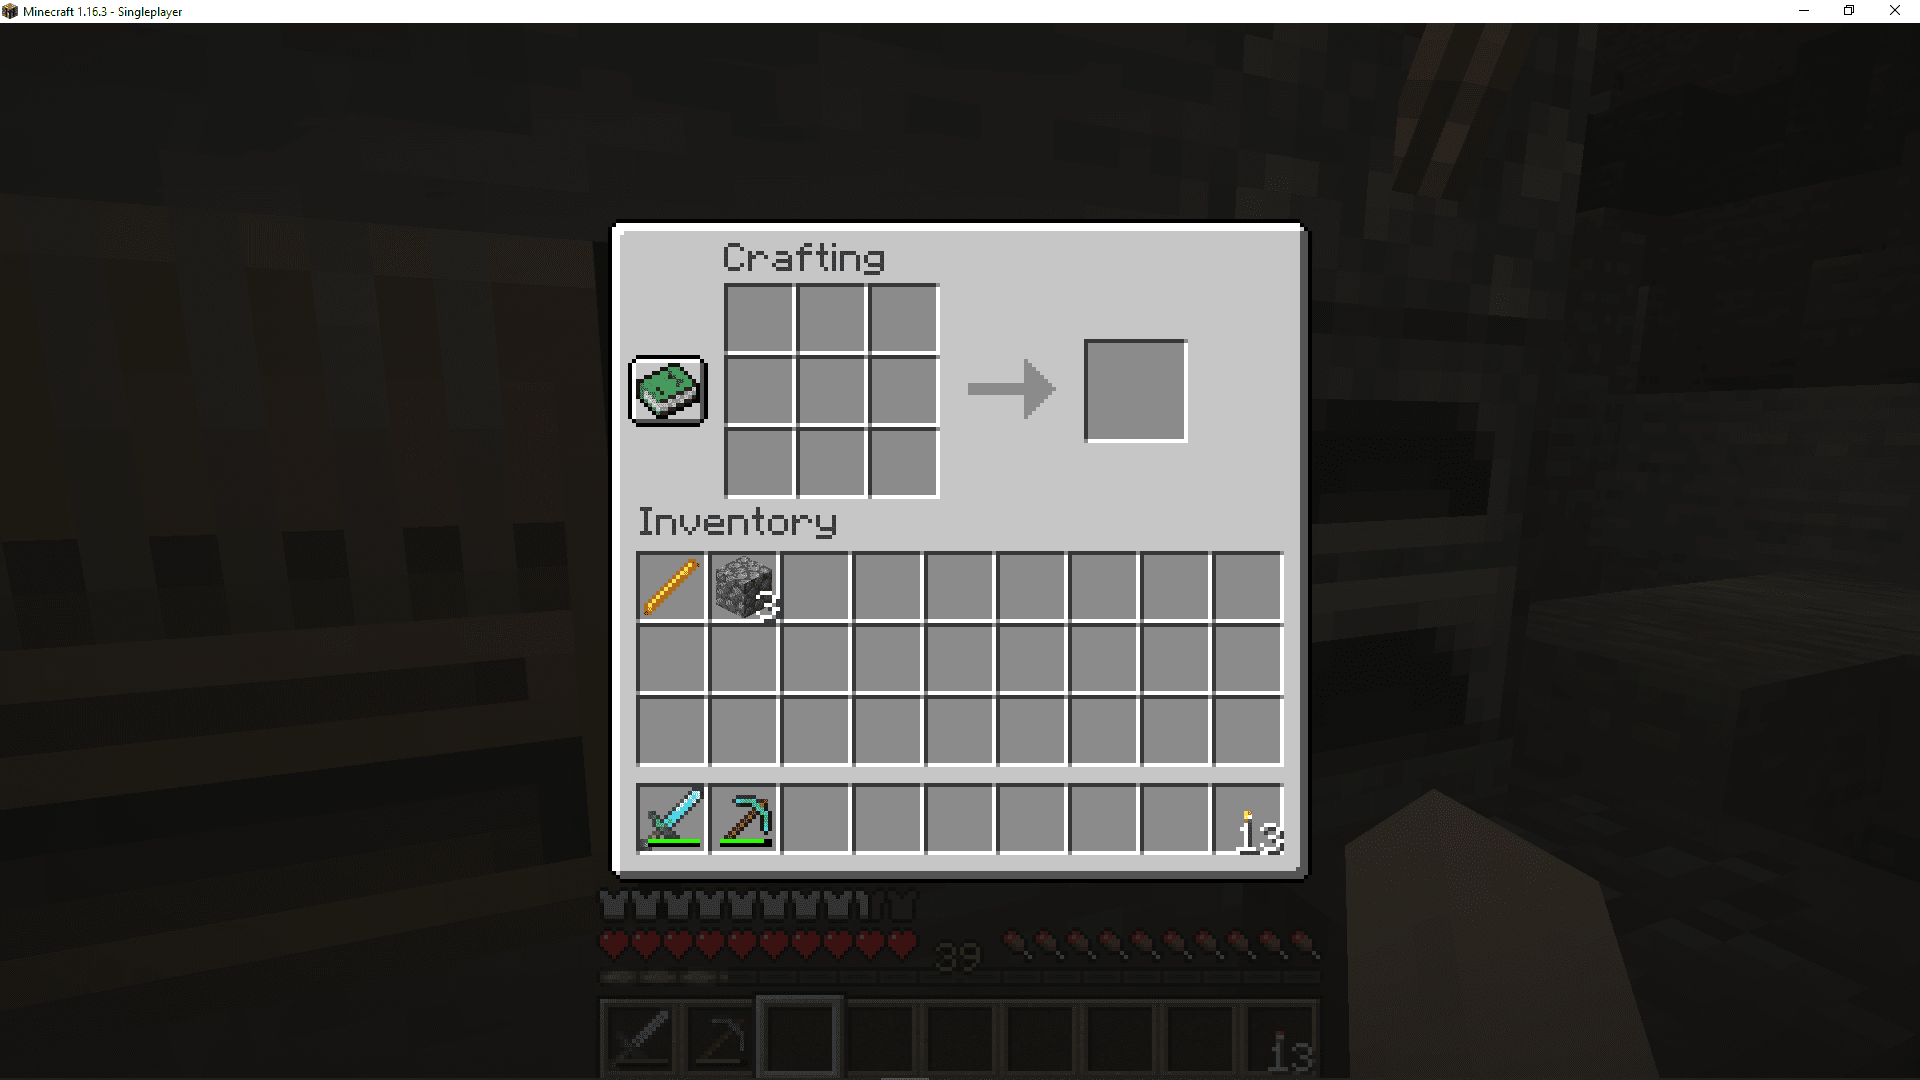 The crafting interface in Minecraft.